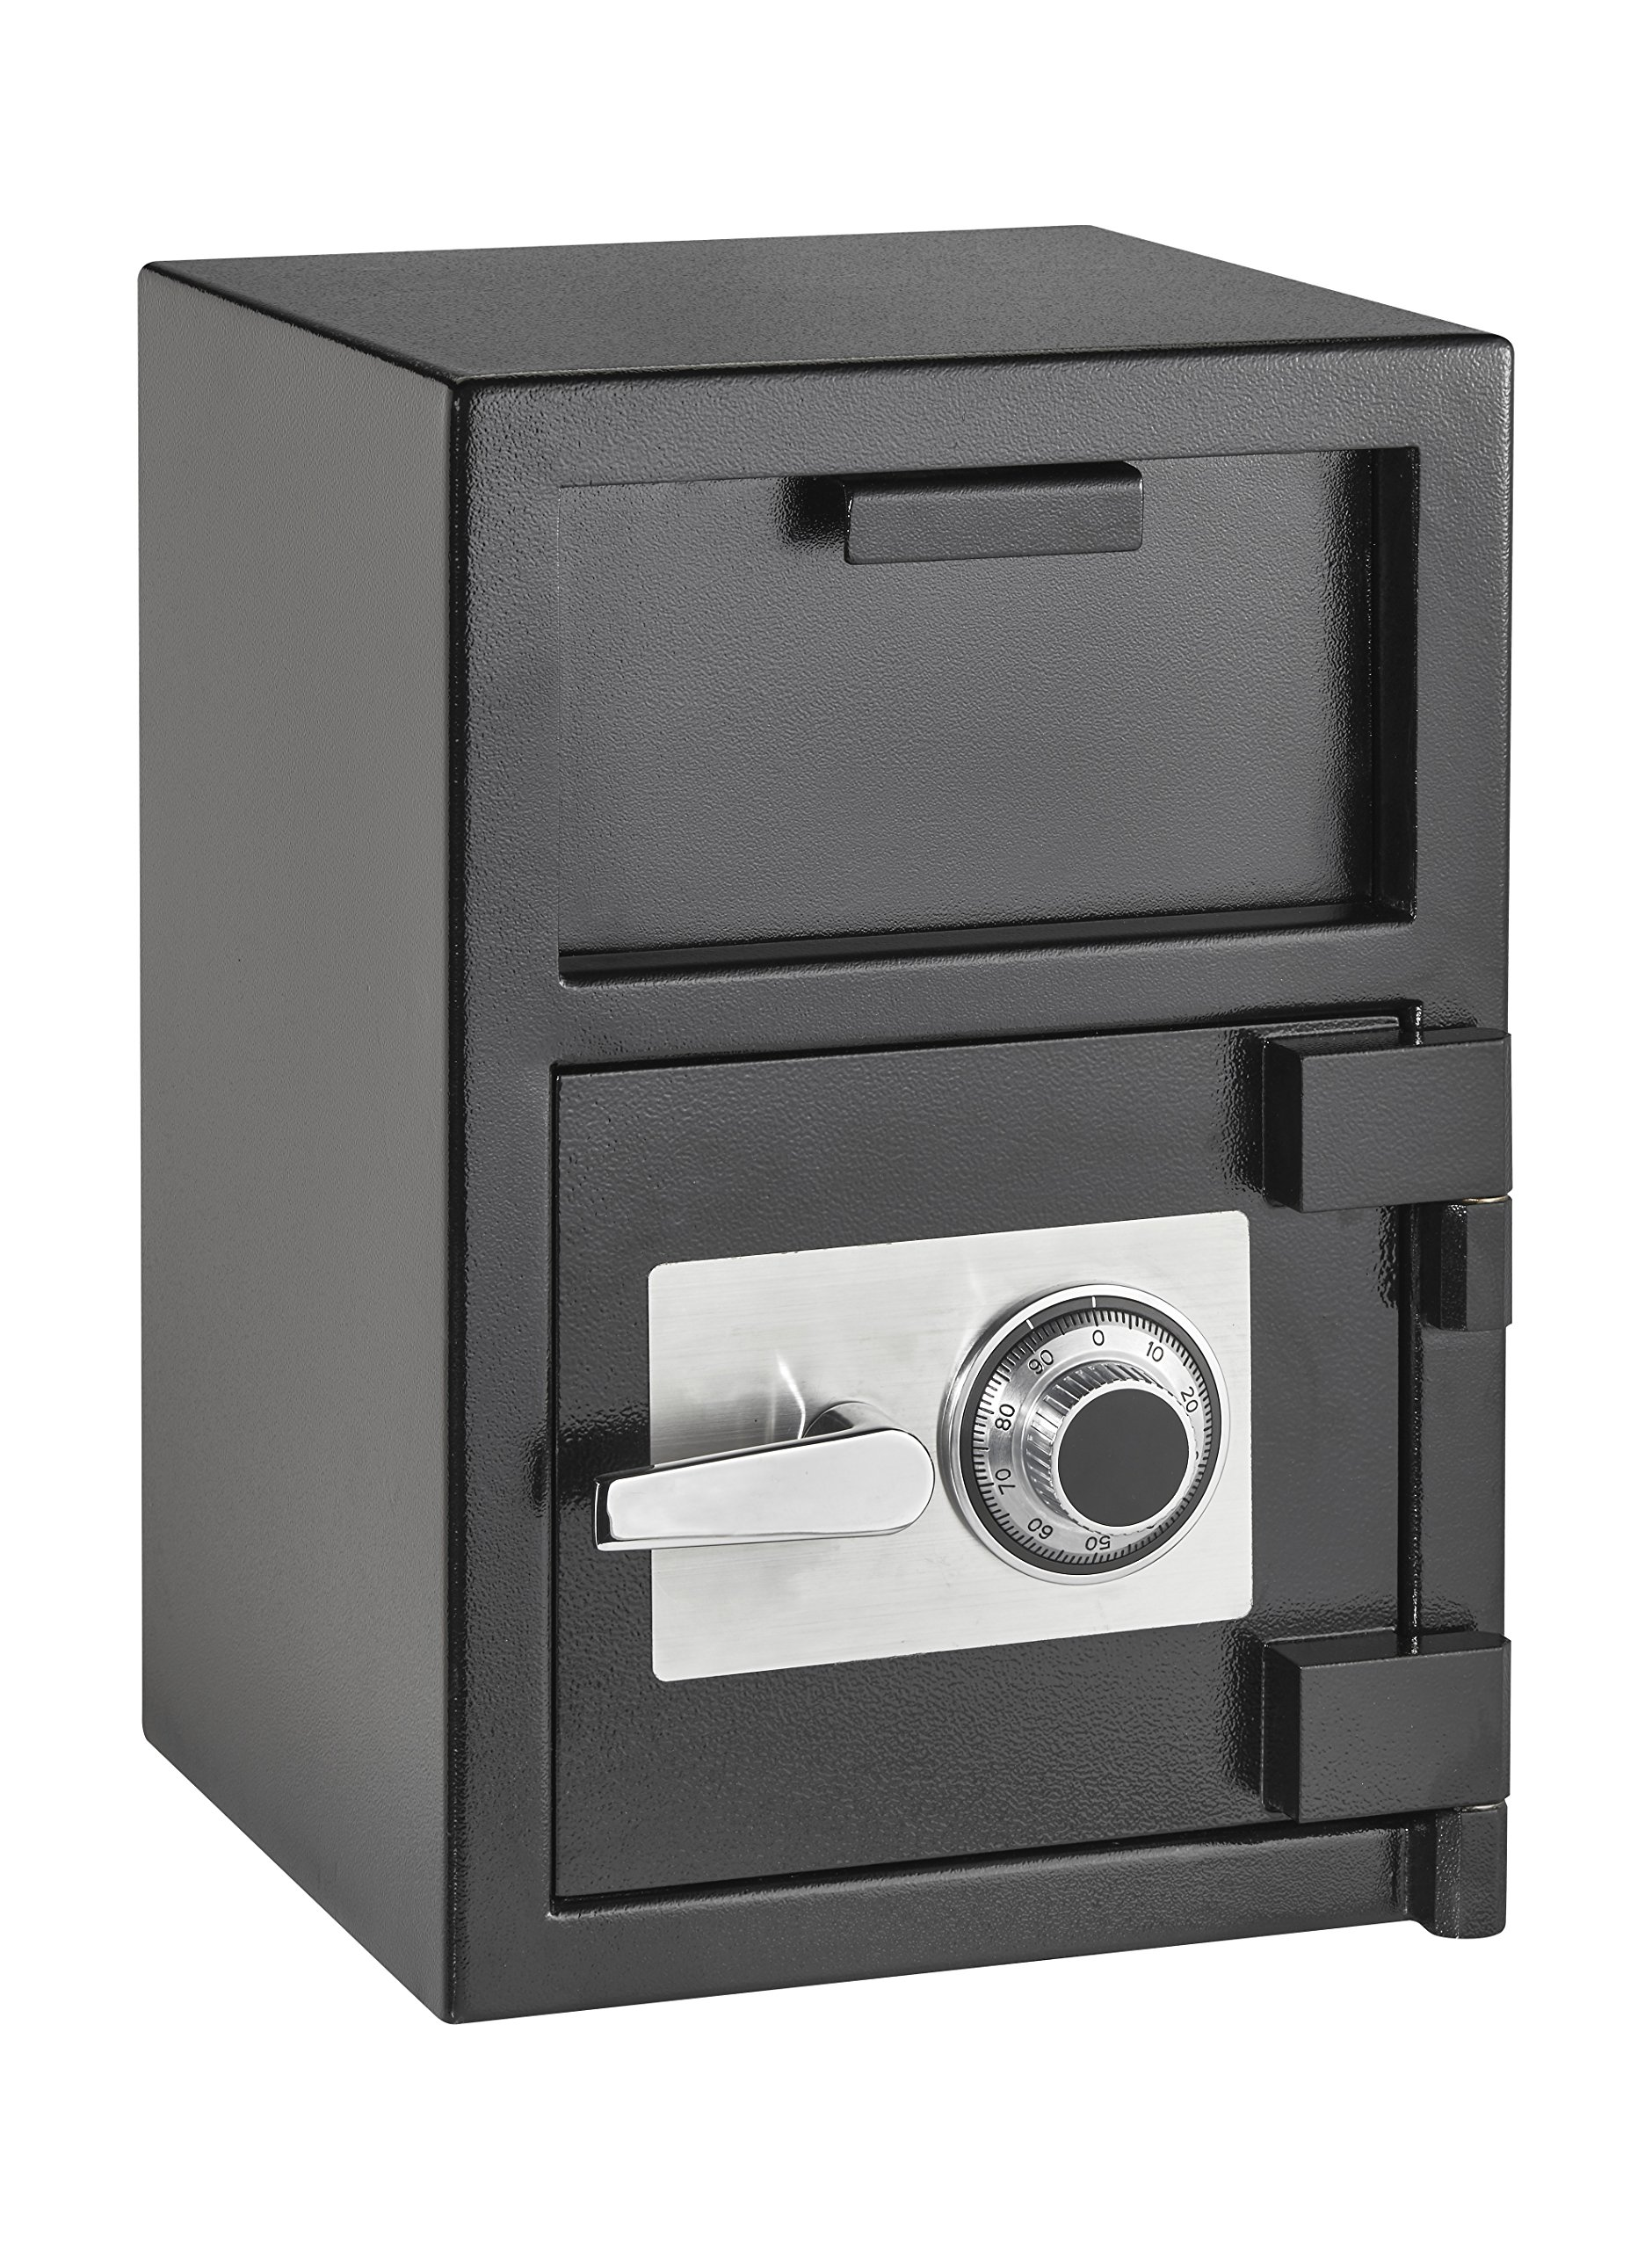 AdirOffice Hopper Loading Combination Lock Safe for Home and Offices (2 Cubic Feet, Black)